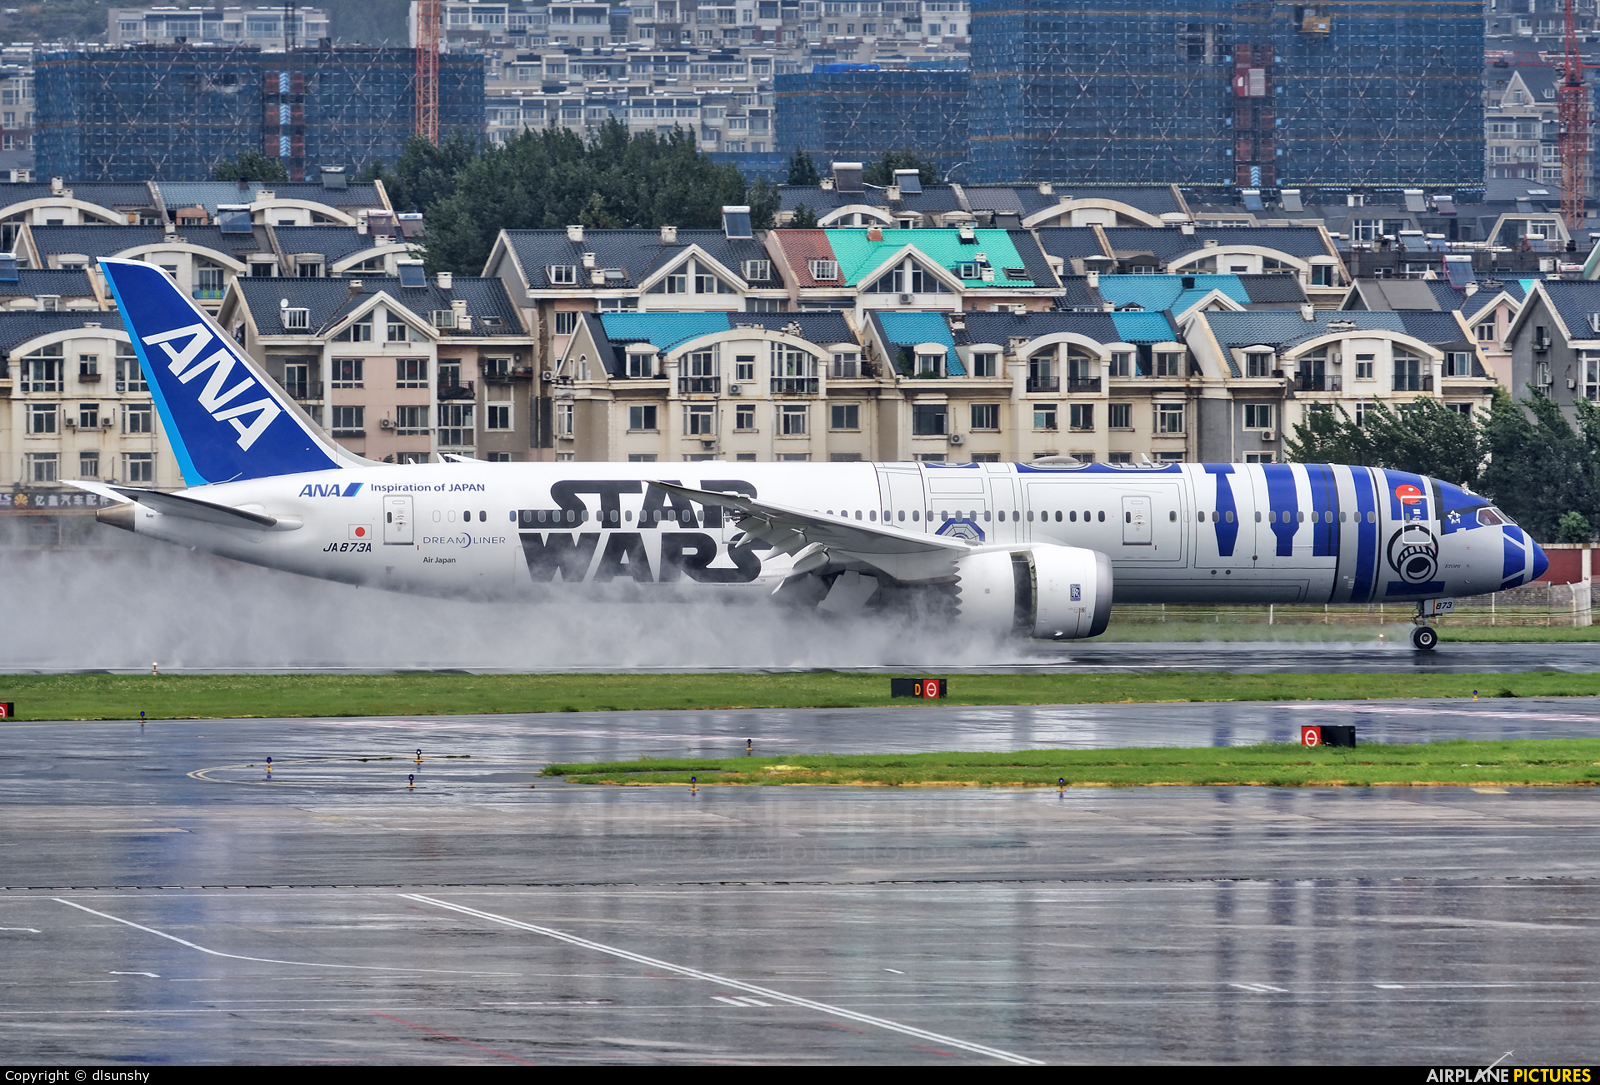 ANA - All Nippon Airways JA873A aircraft at Dalian Zhoushuizi Int'l